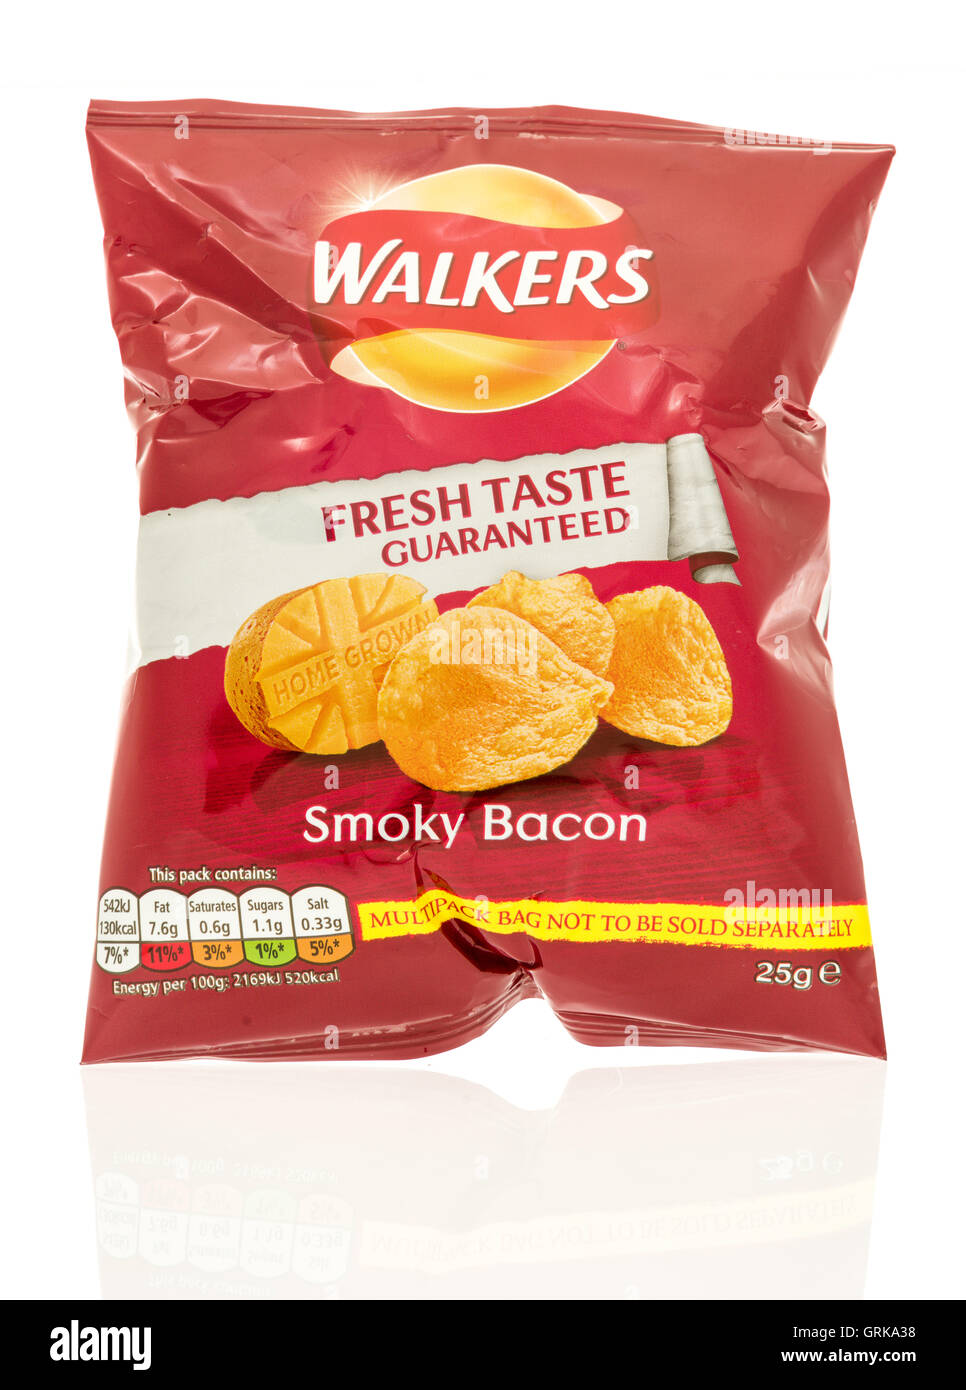 Winneconne, WI - 12 August 2016: Bag of Walkers chips in smokey bacon flavor on an isolated background. - Stock Image